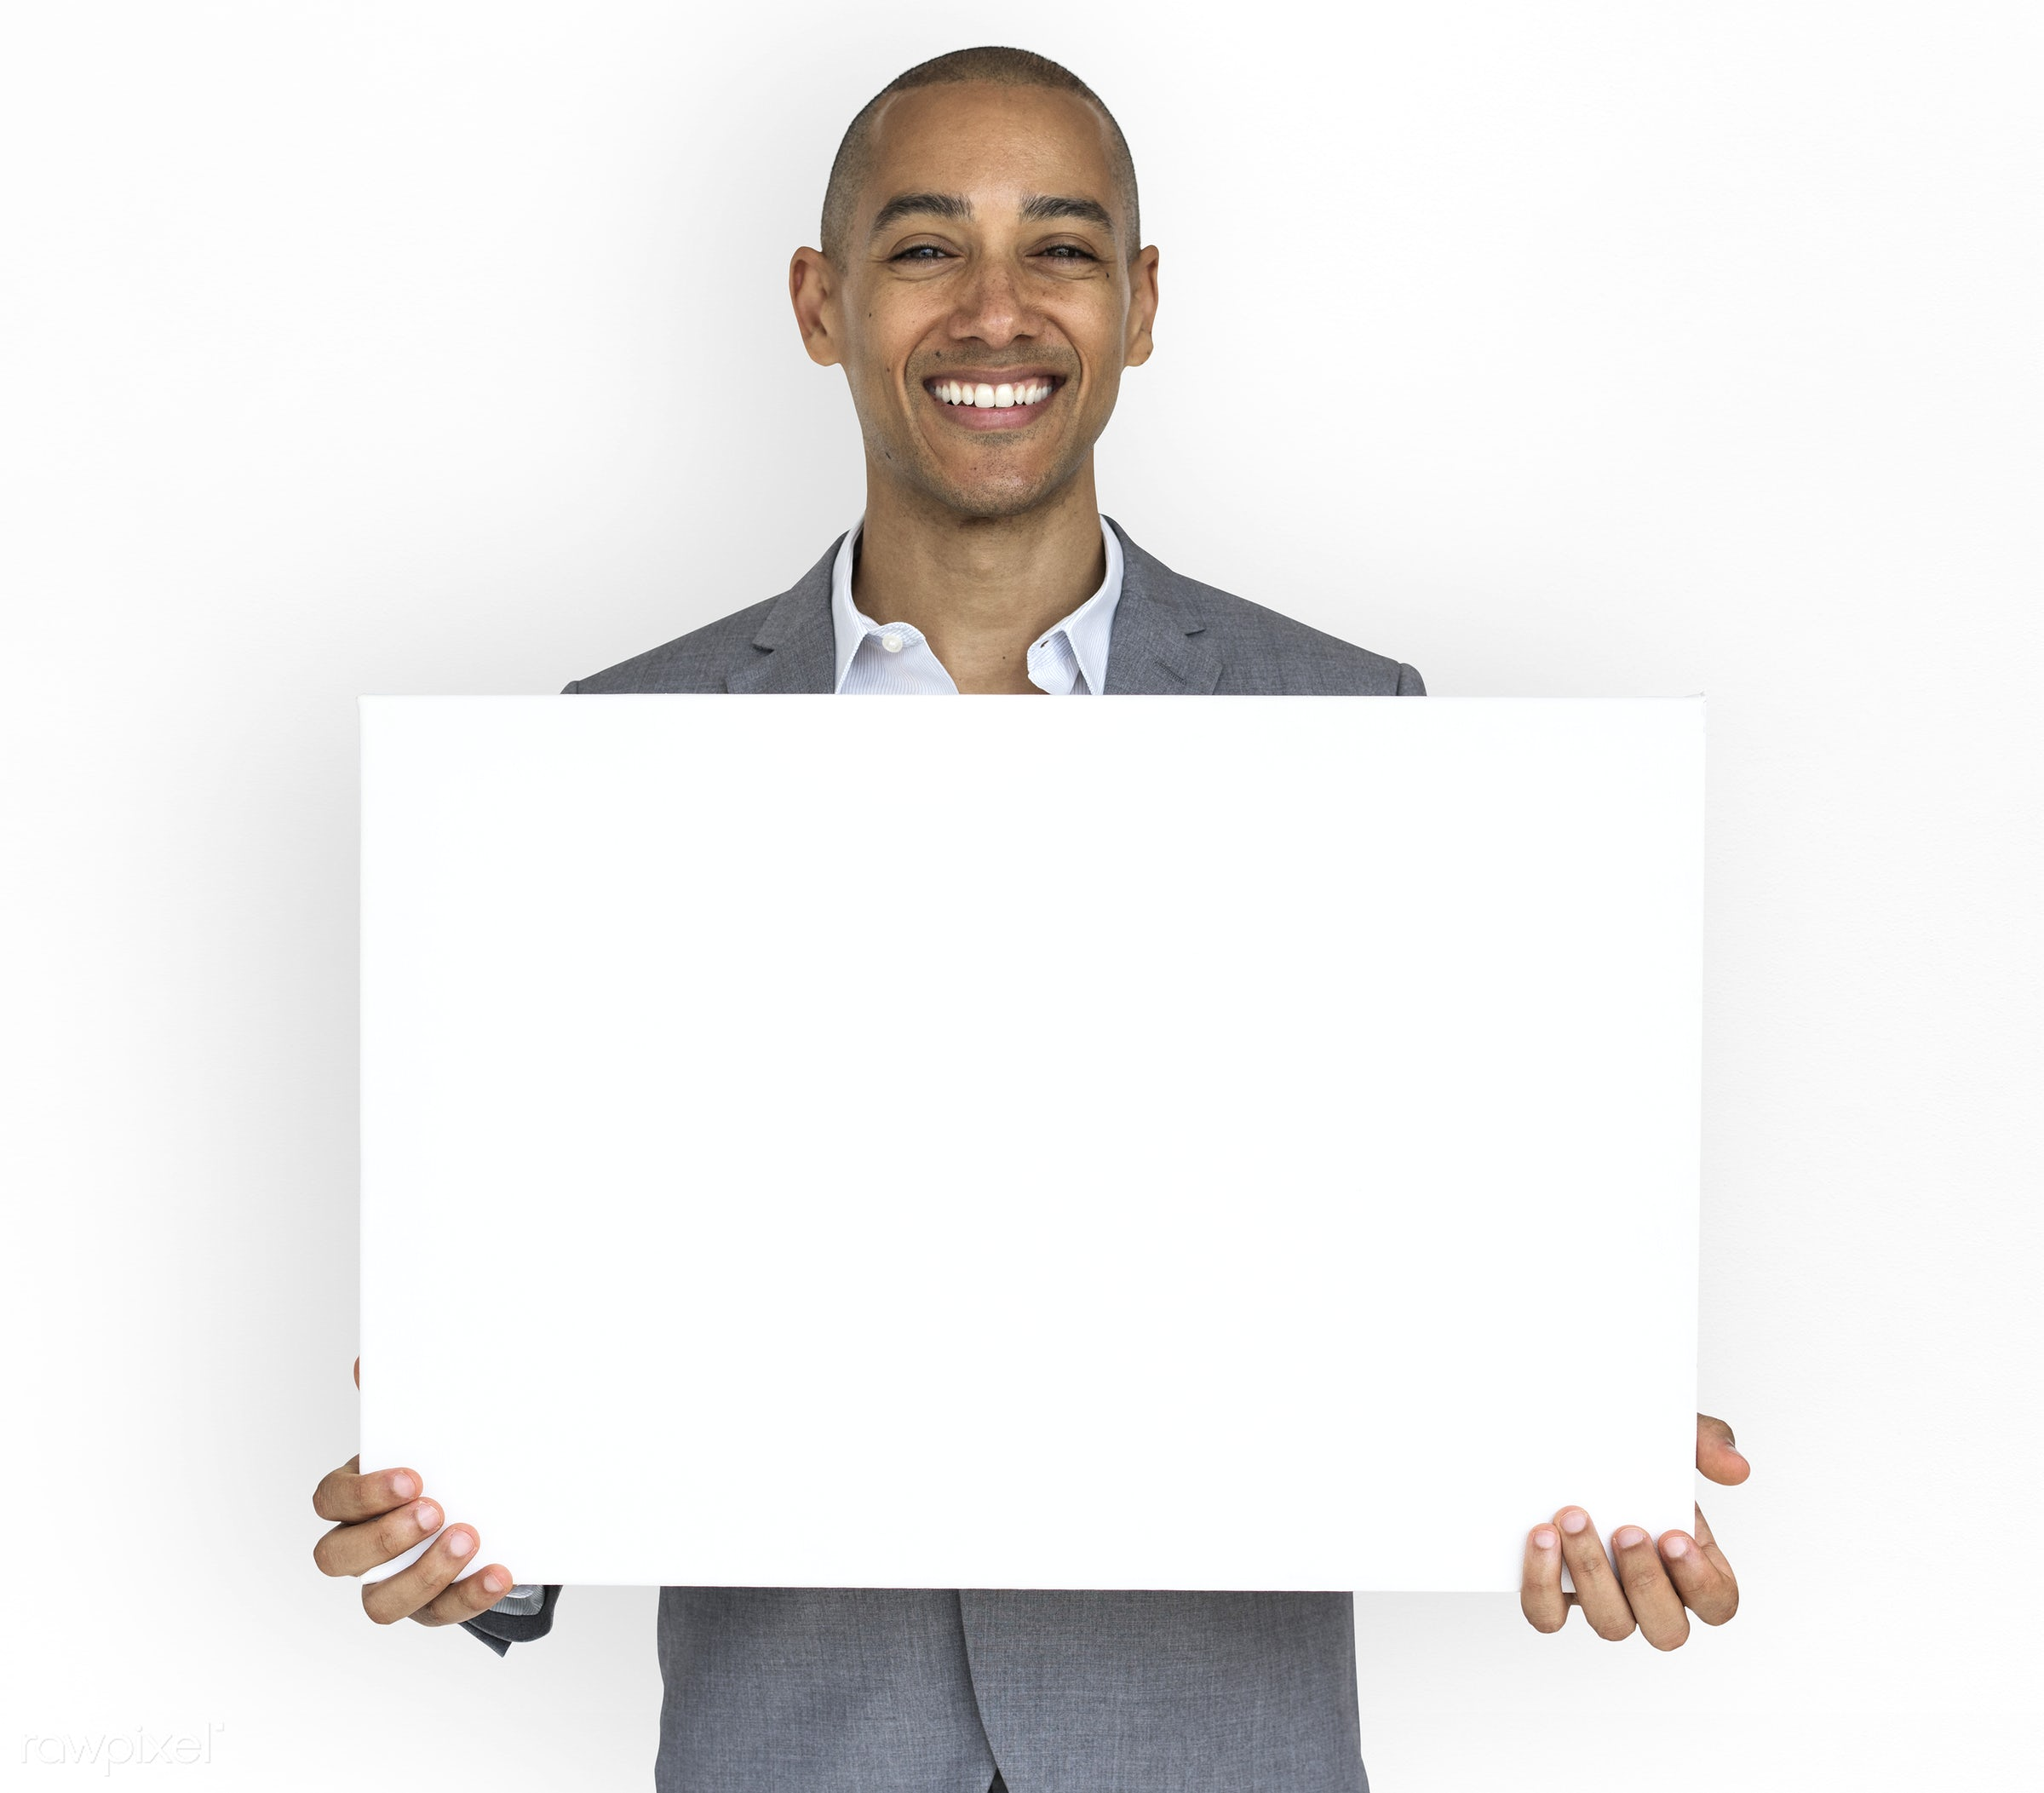 studio, expression, person, copy space, holding, joy, isolated on white, people, business, placard, businessman, happy,...